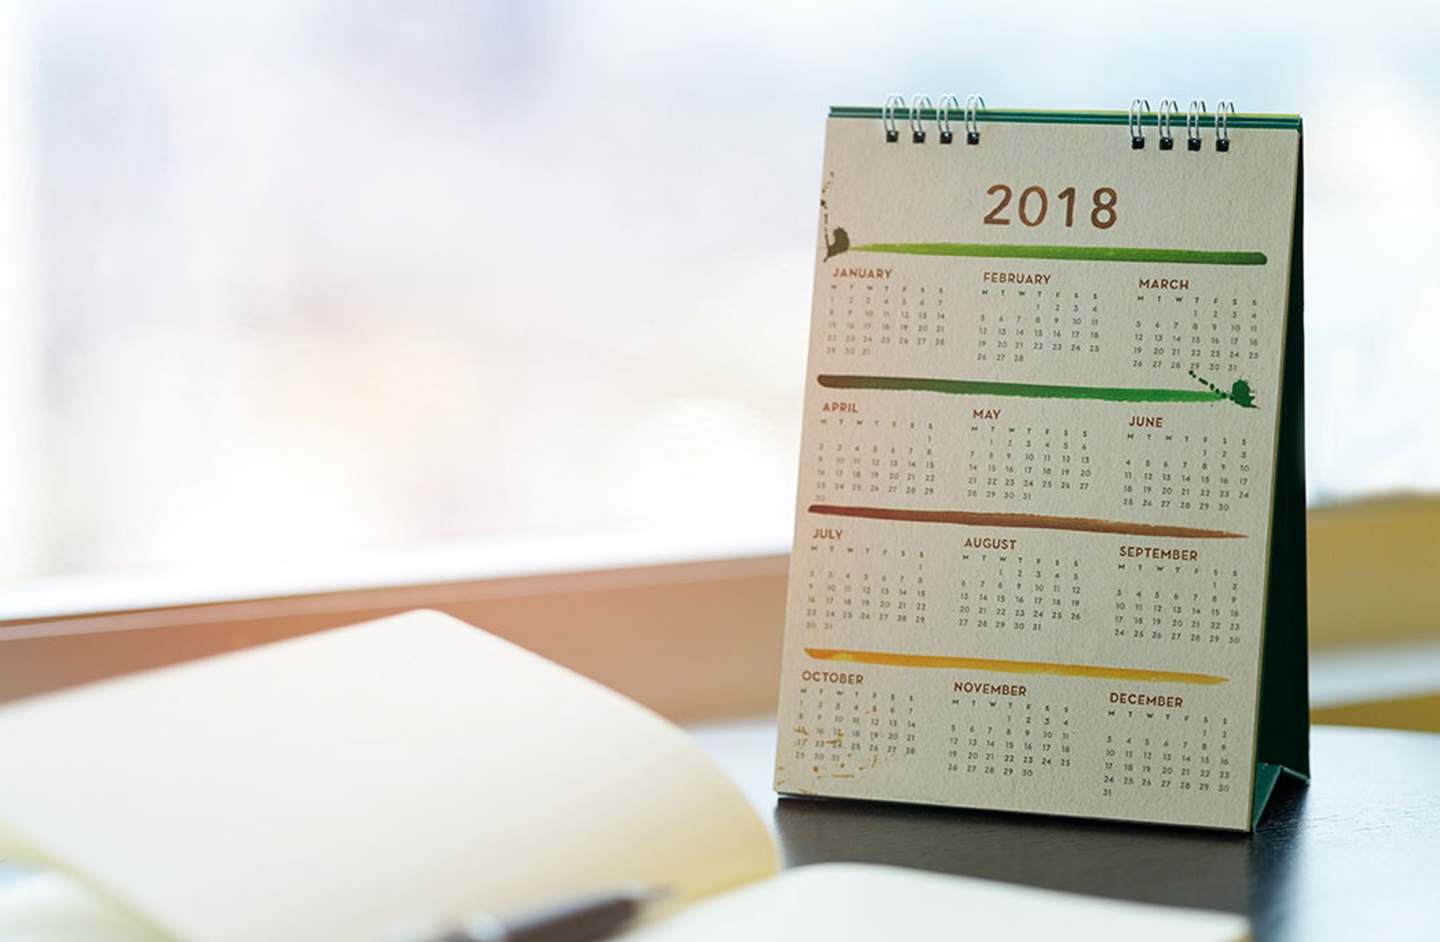 3 Big Changes for Landlords In 2018